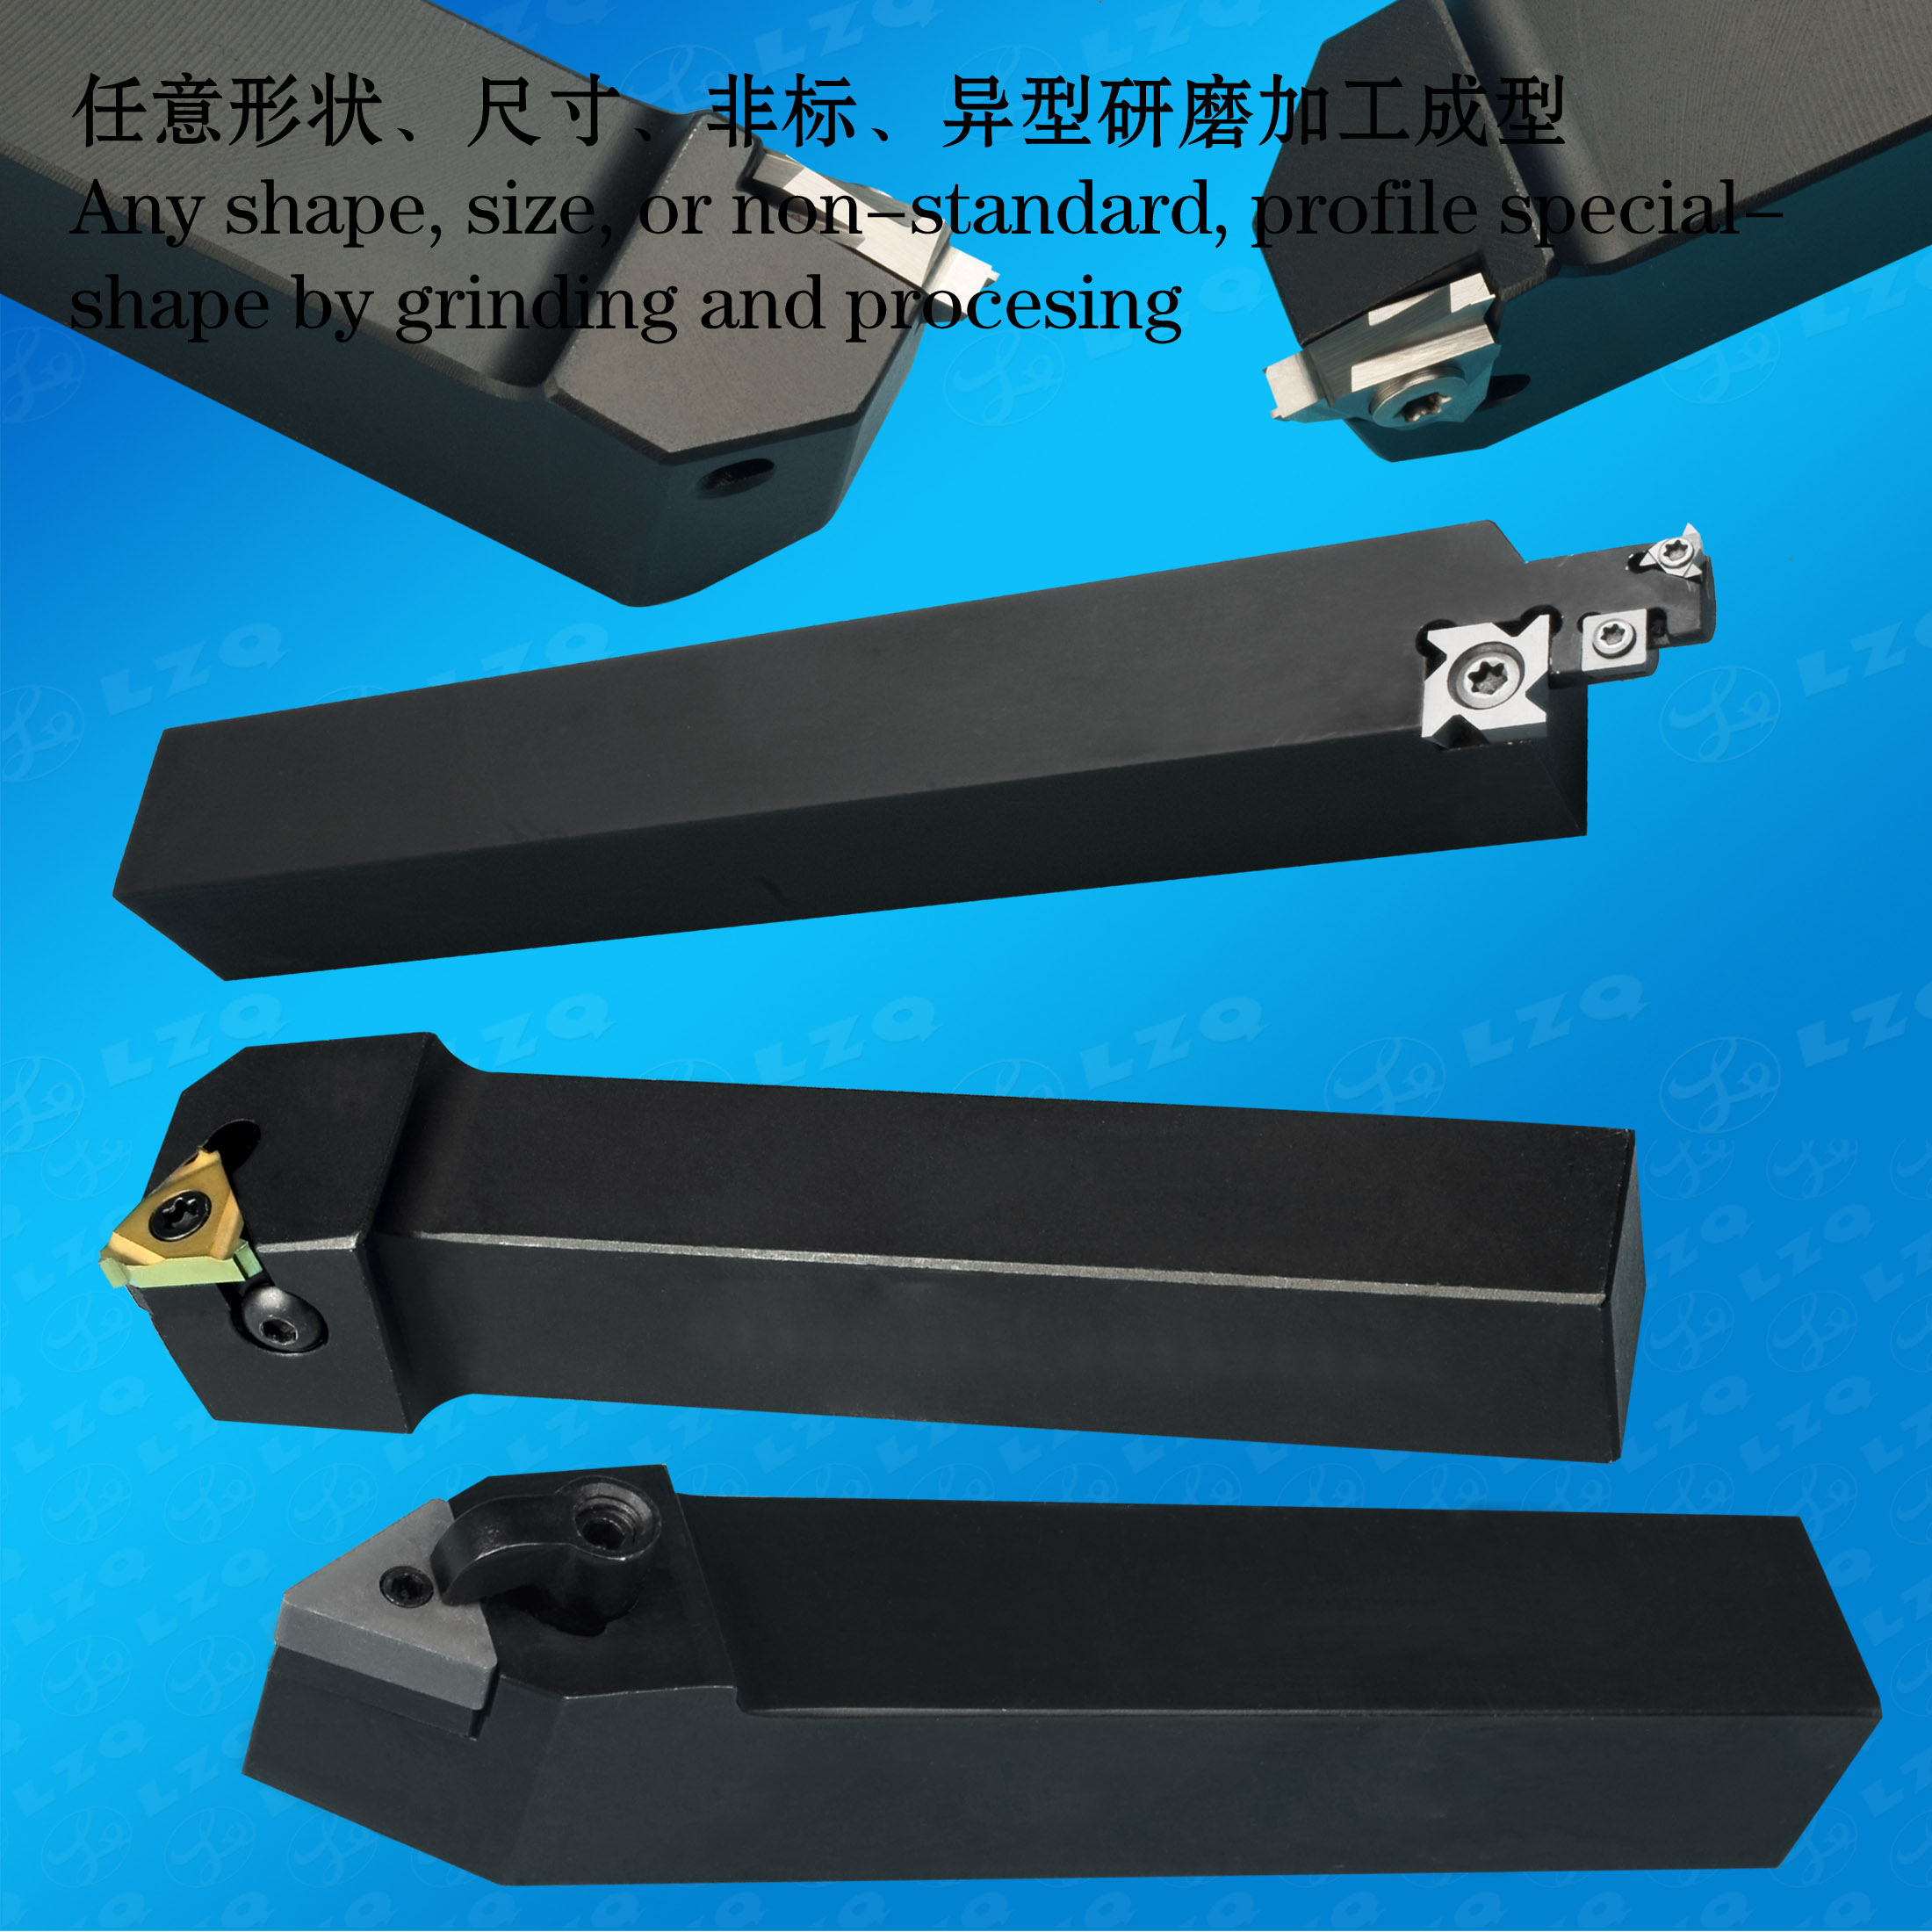 Roller, Cutter Bar, High Speed Cutter Bar